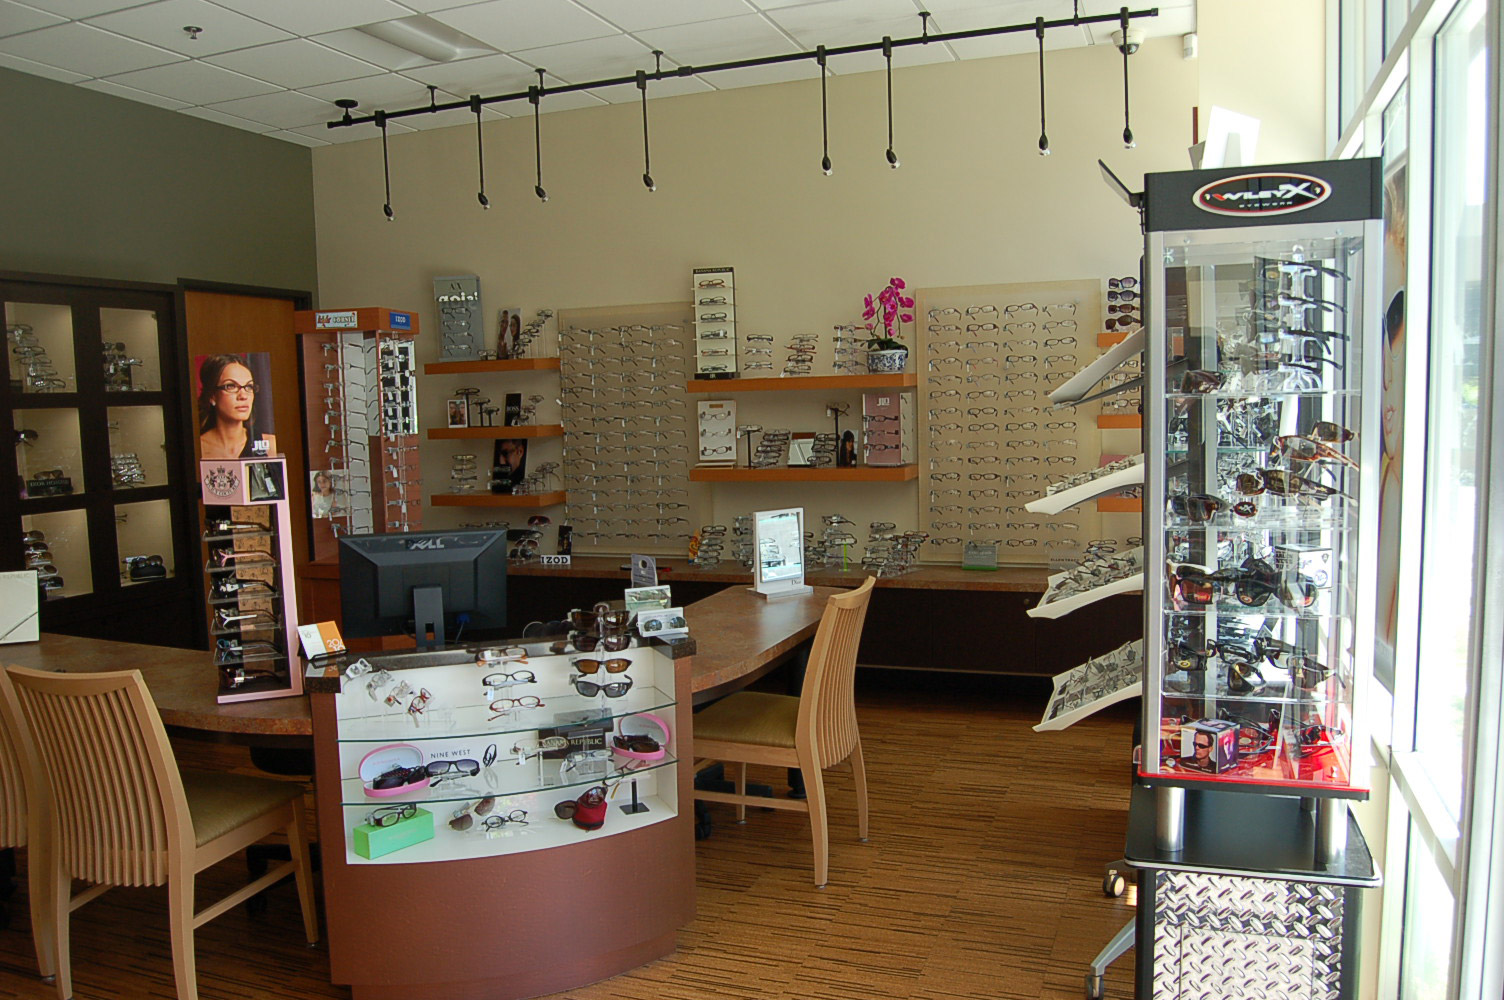 20-10 Vision Care showroom